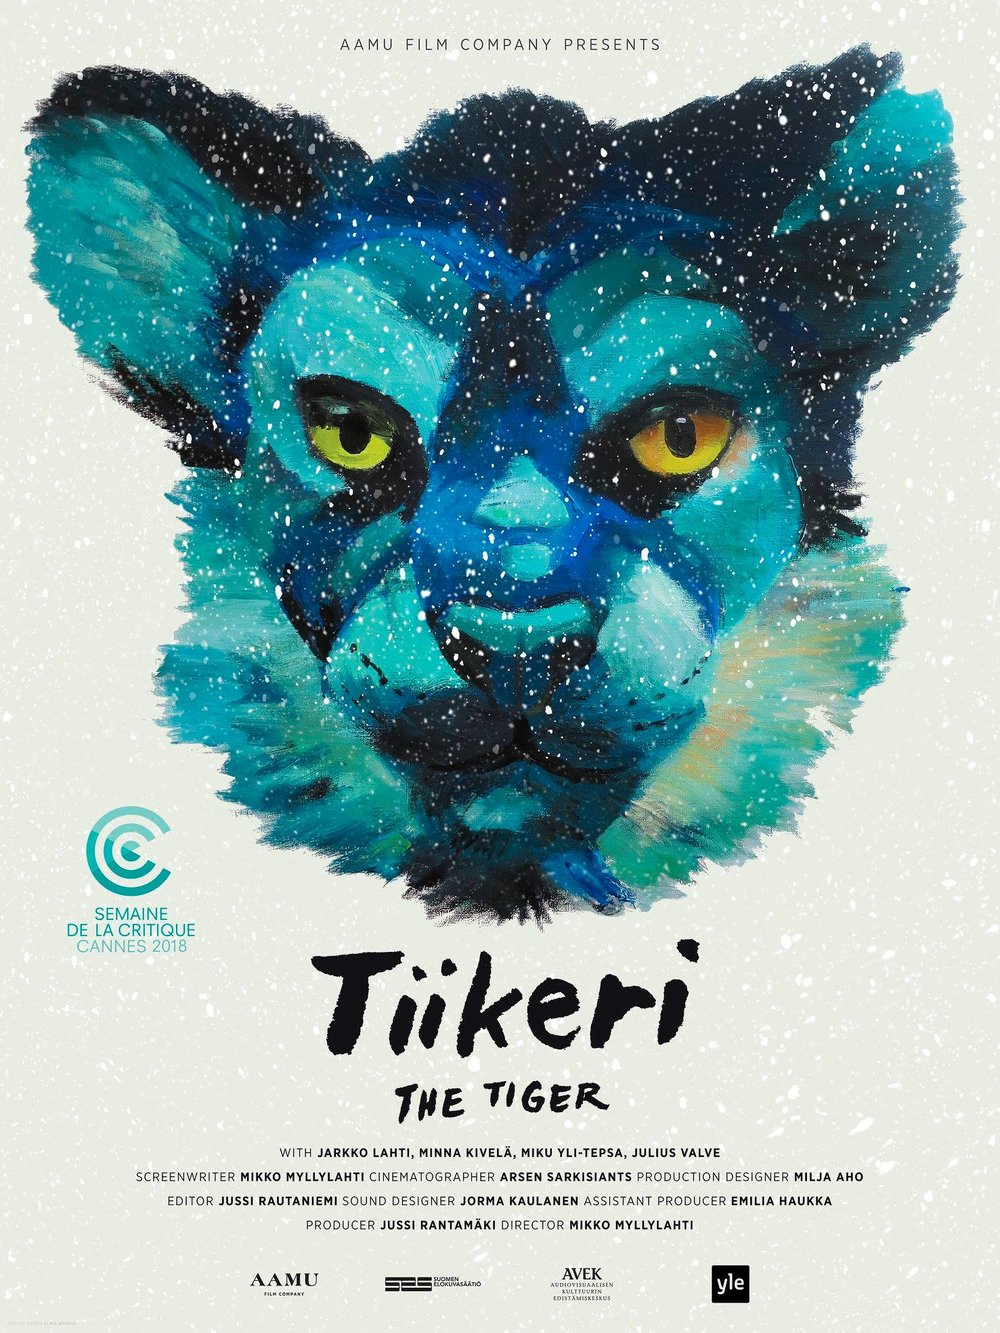 Tiikeri - The Tiger dir. Mikko Mylllahti Aamu Film company 2018 / Semaine de la Critique Cannes 2018